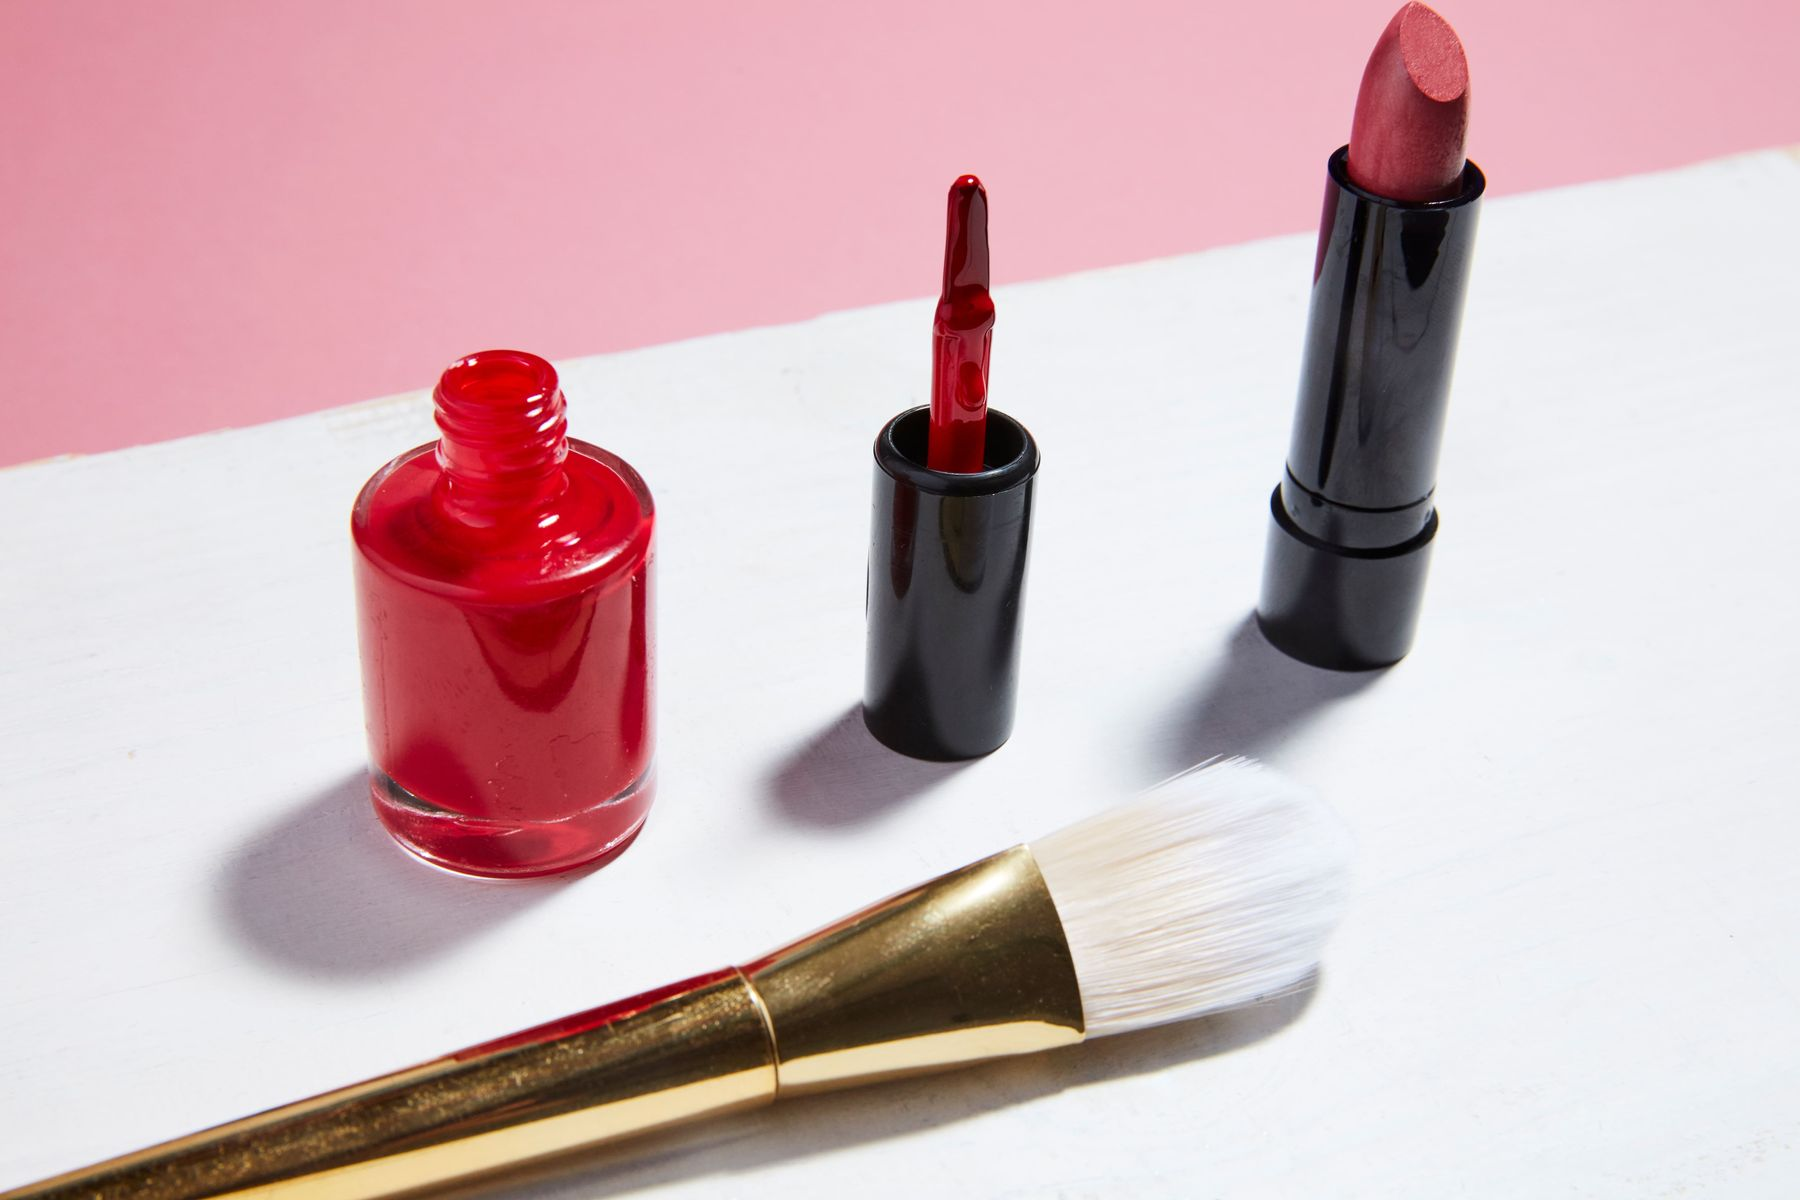 how to get lipstick out of clothes